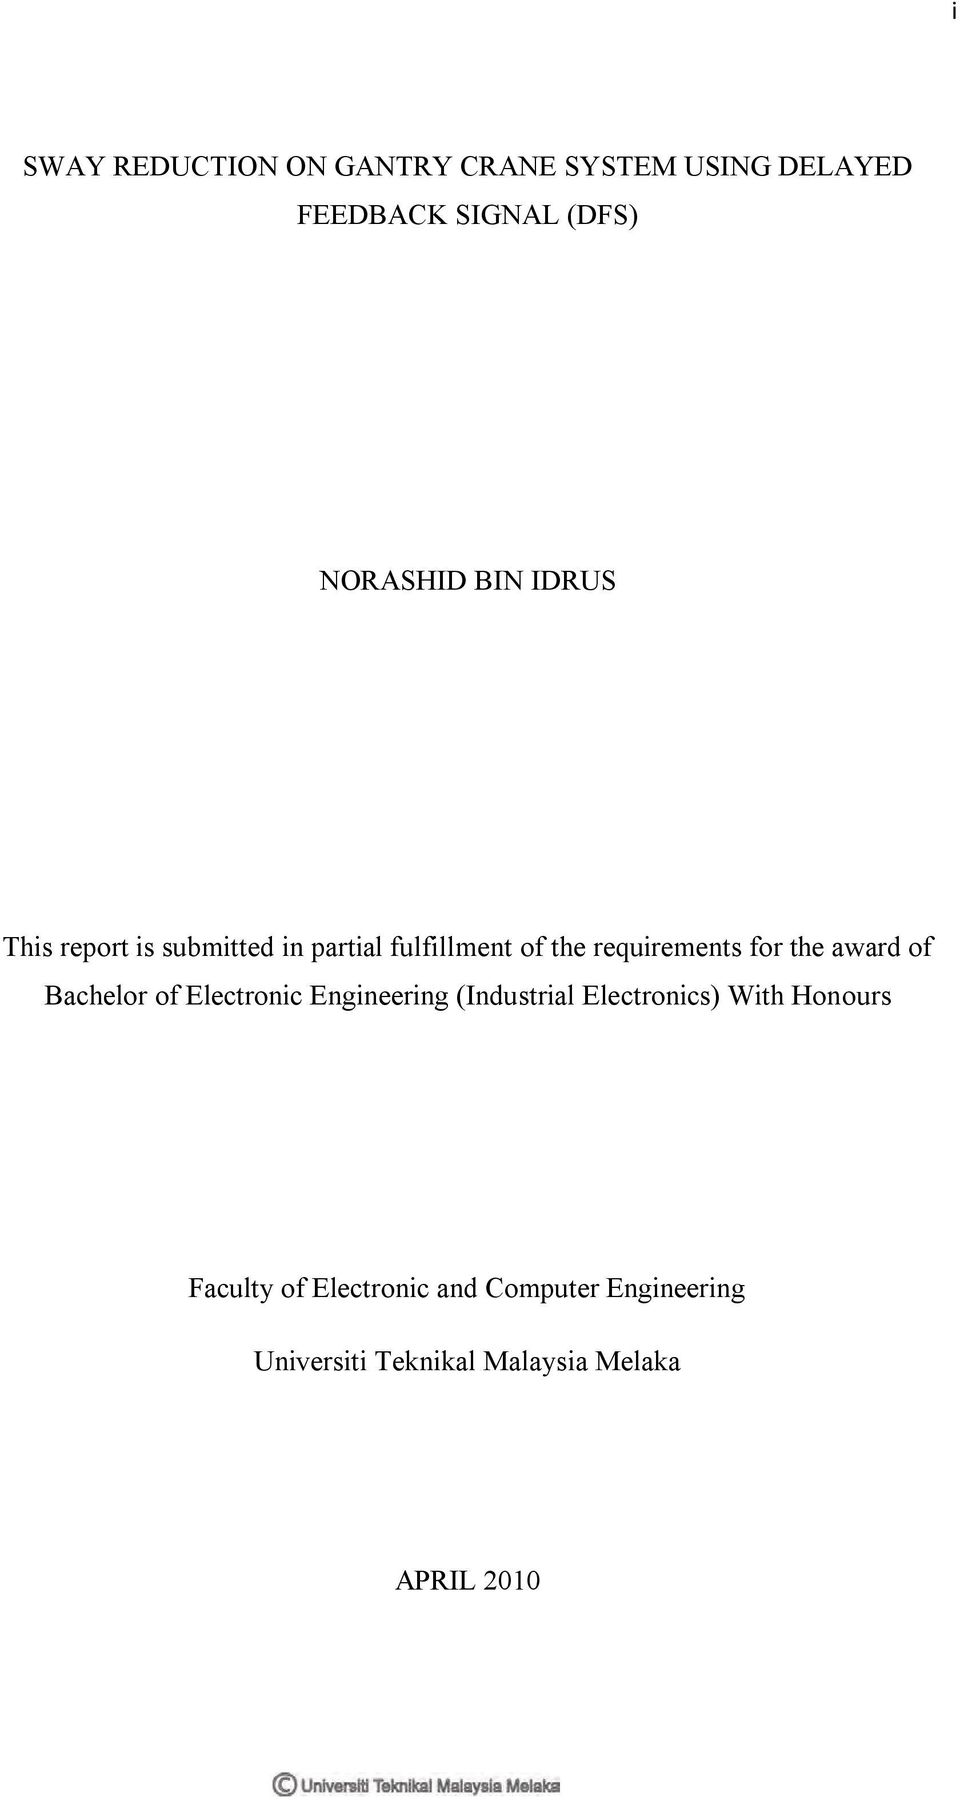 award of Bachelor of Electronic Engineering (Industrial Electronics) With Honours